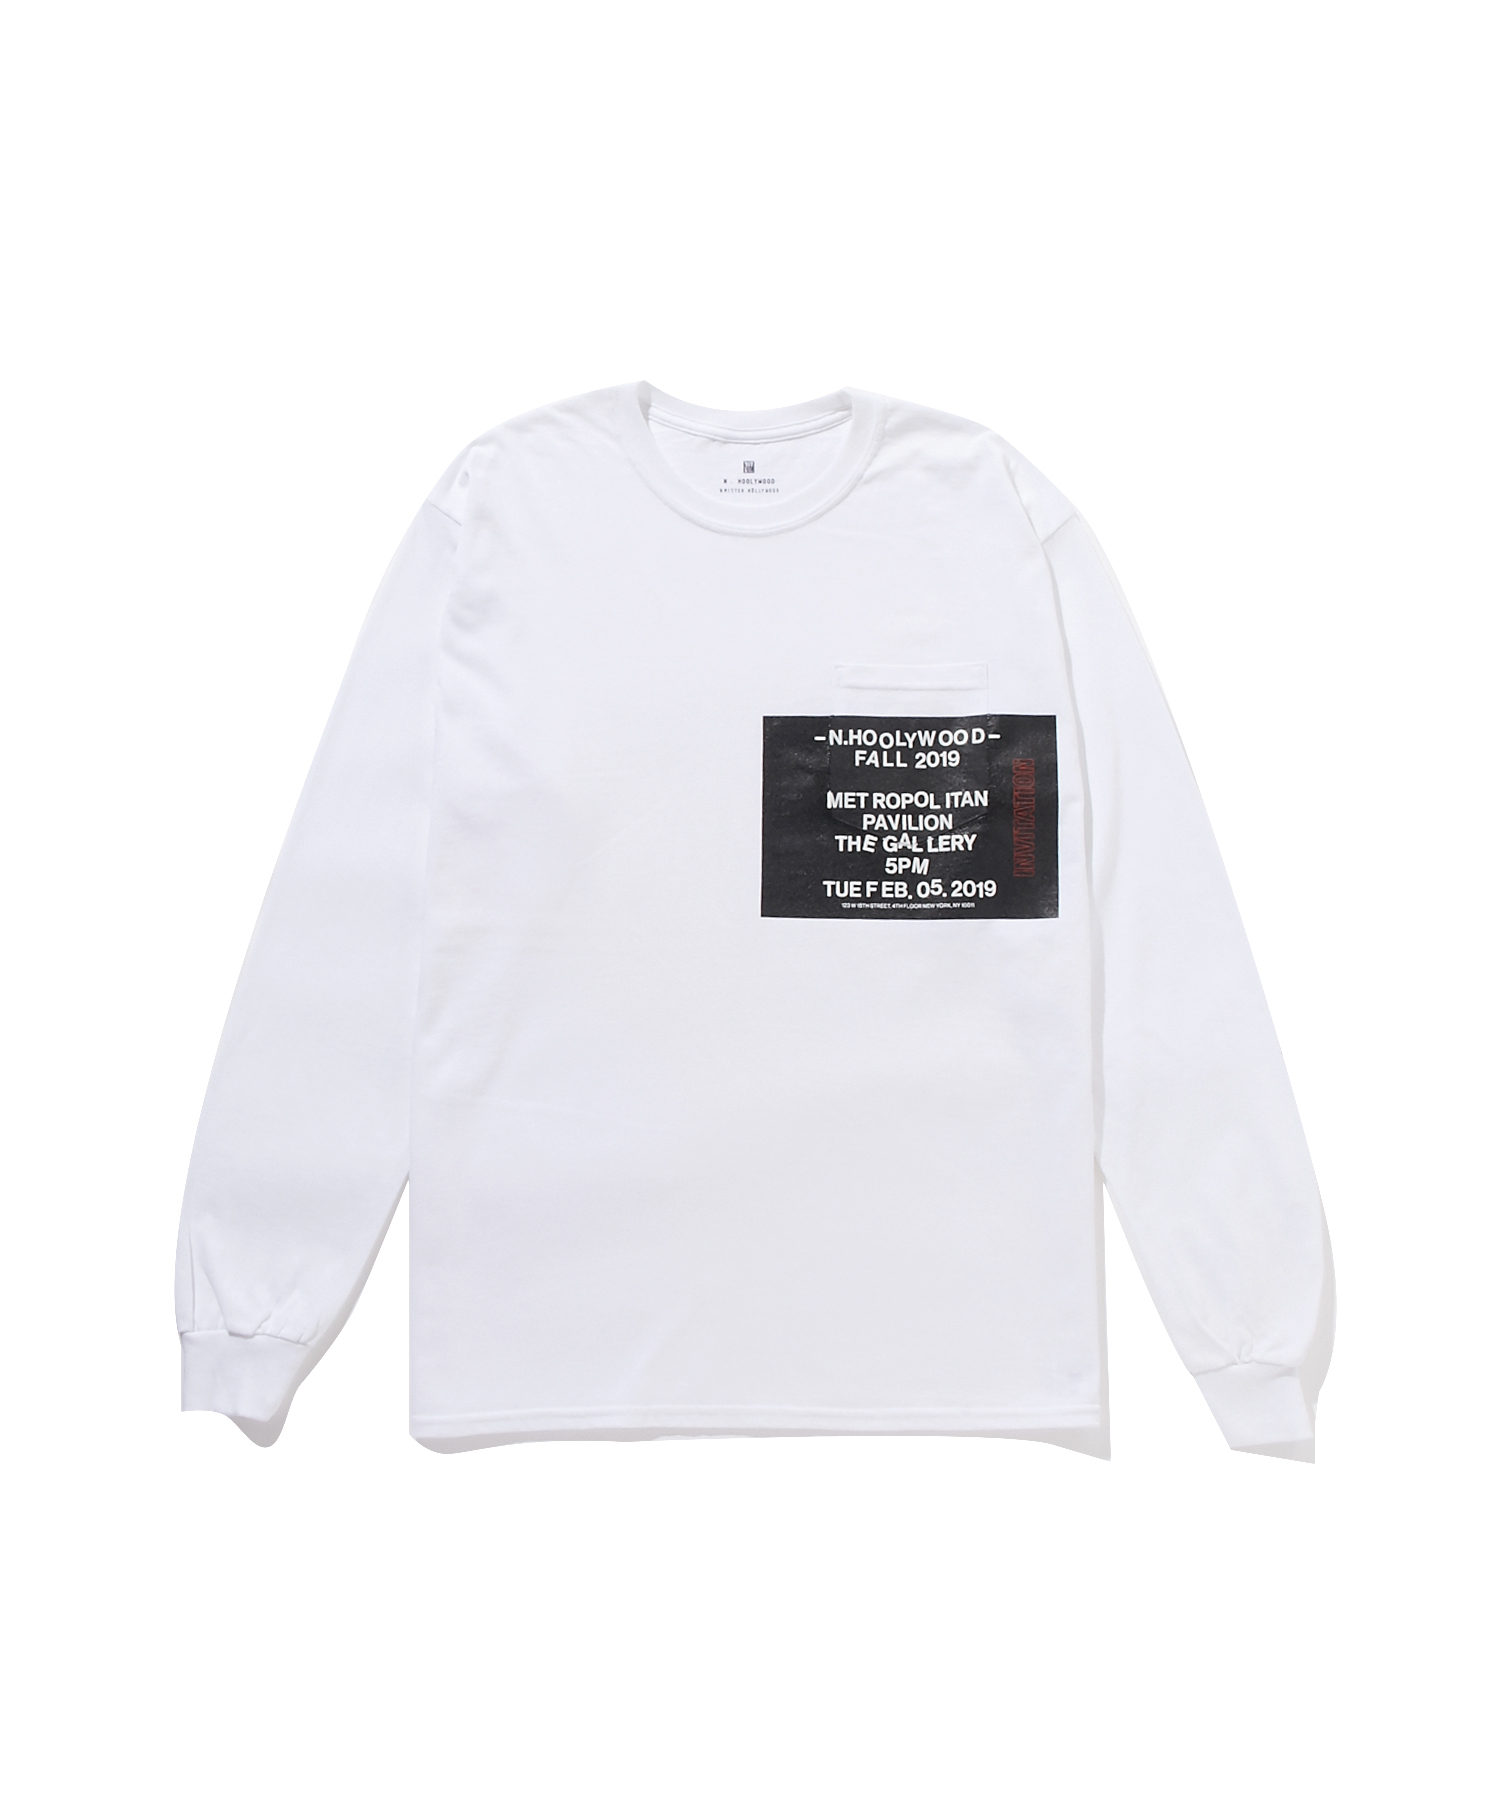 FALL2019 LONG SLEEVE T-SHIRT